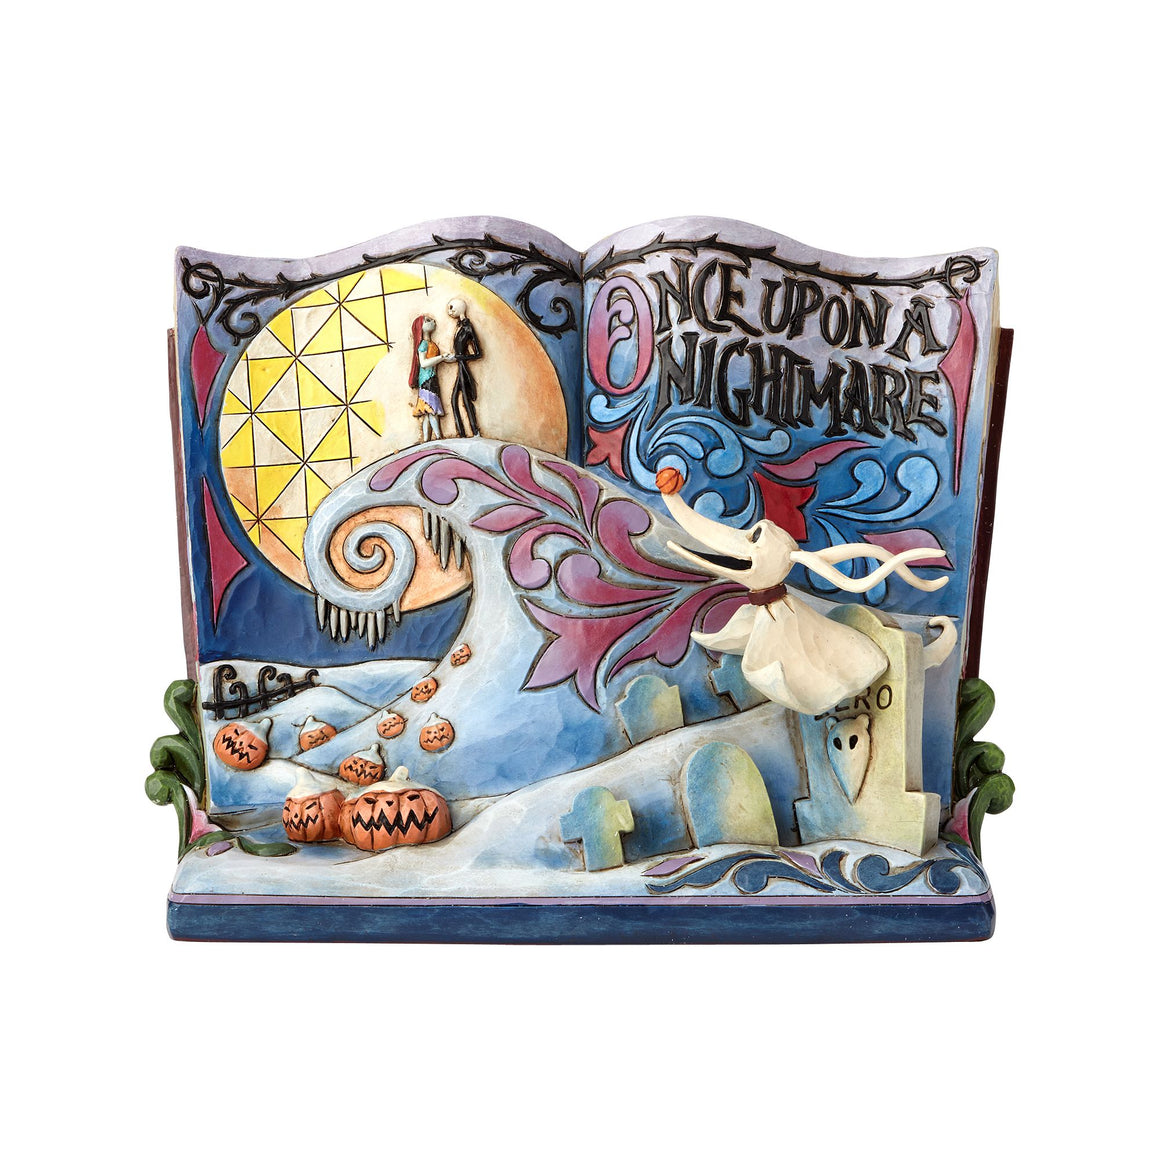 Once Upon A Nightmare (Storybook Nightmare Before Christmas Figurine)- Disney Traditions by Jim Shore